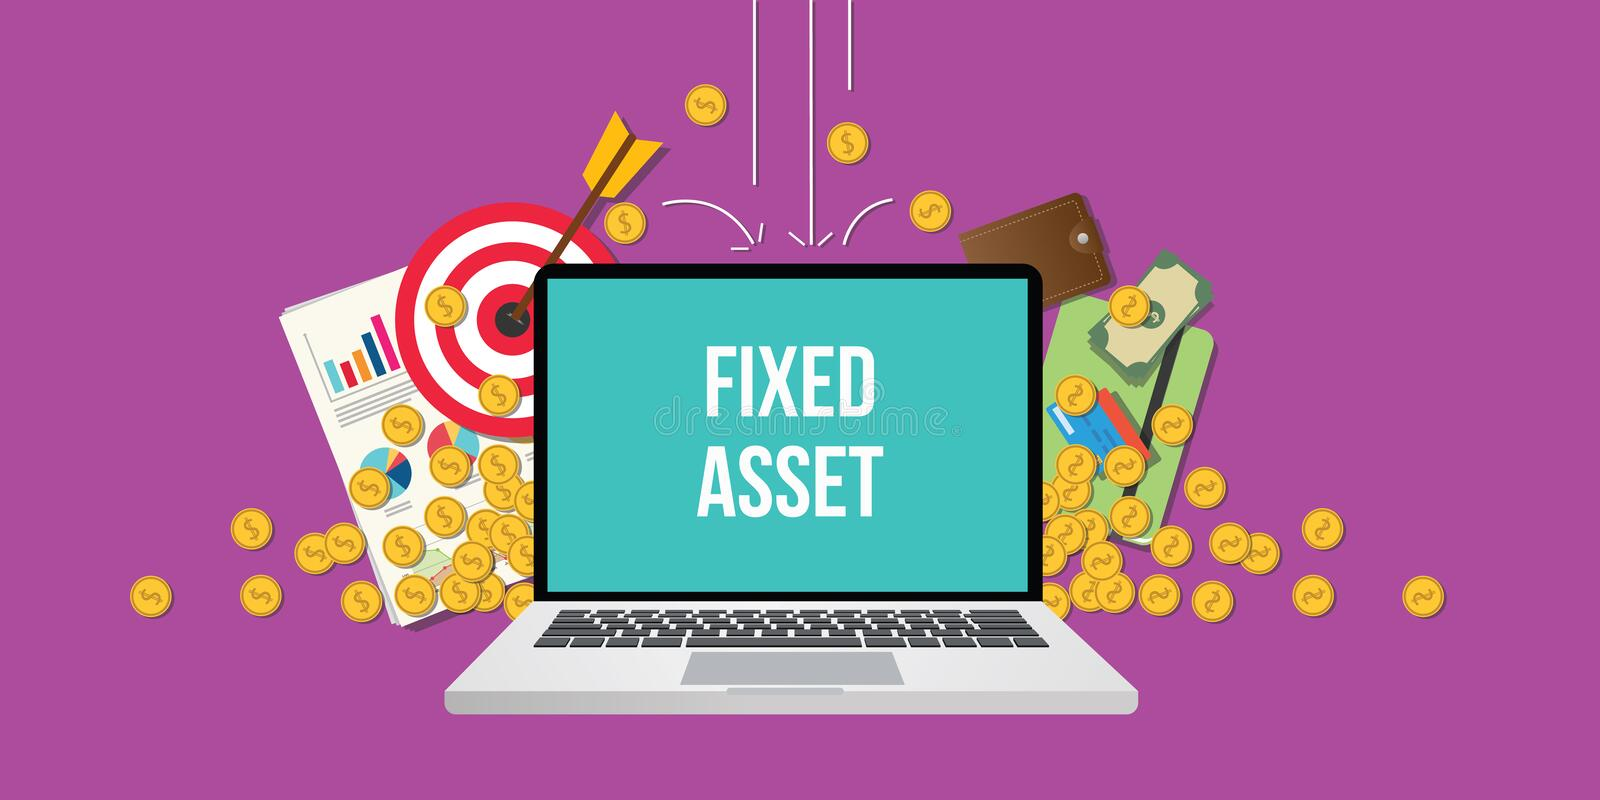 Fixed asset concept illustration with laptop text on screen gold coin money. Falling down with goals graph chart paperwork as background vector royalty free illustration